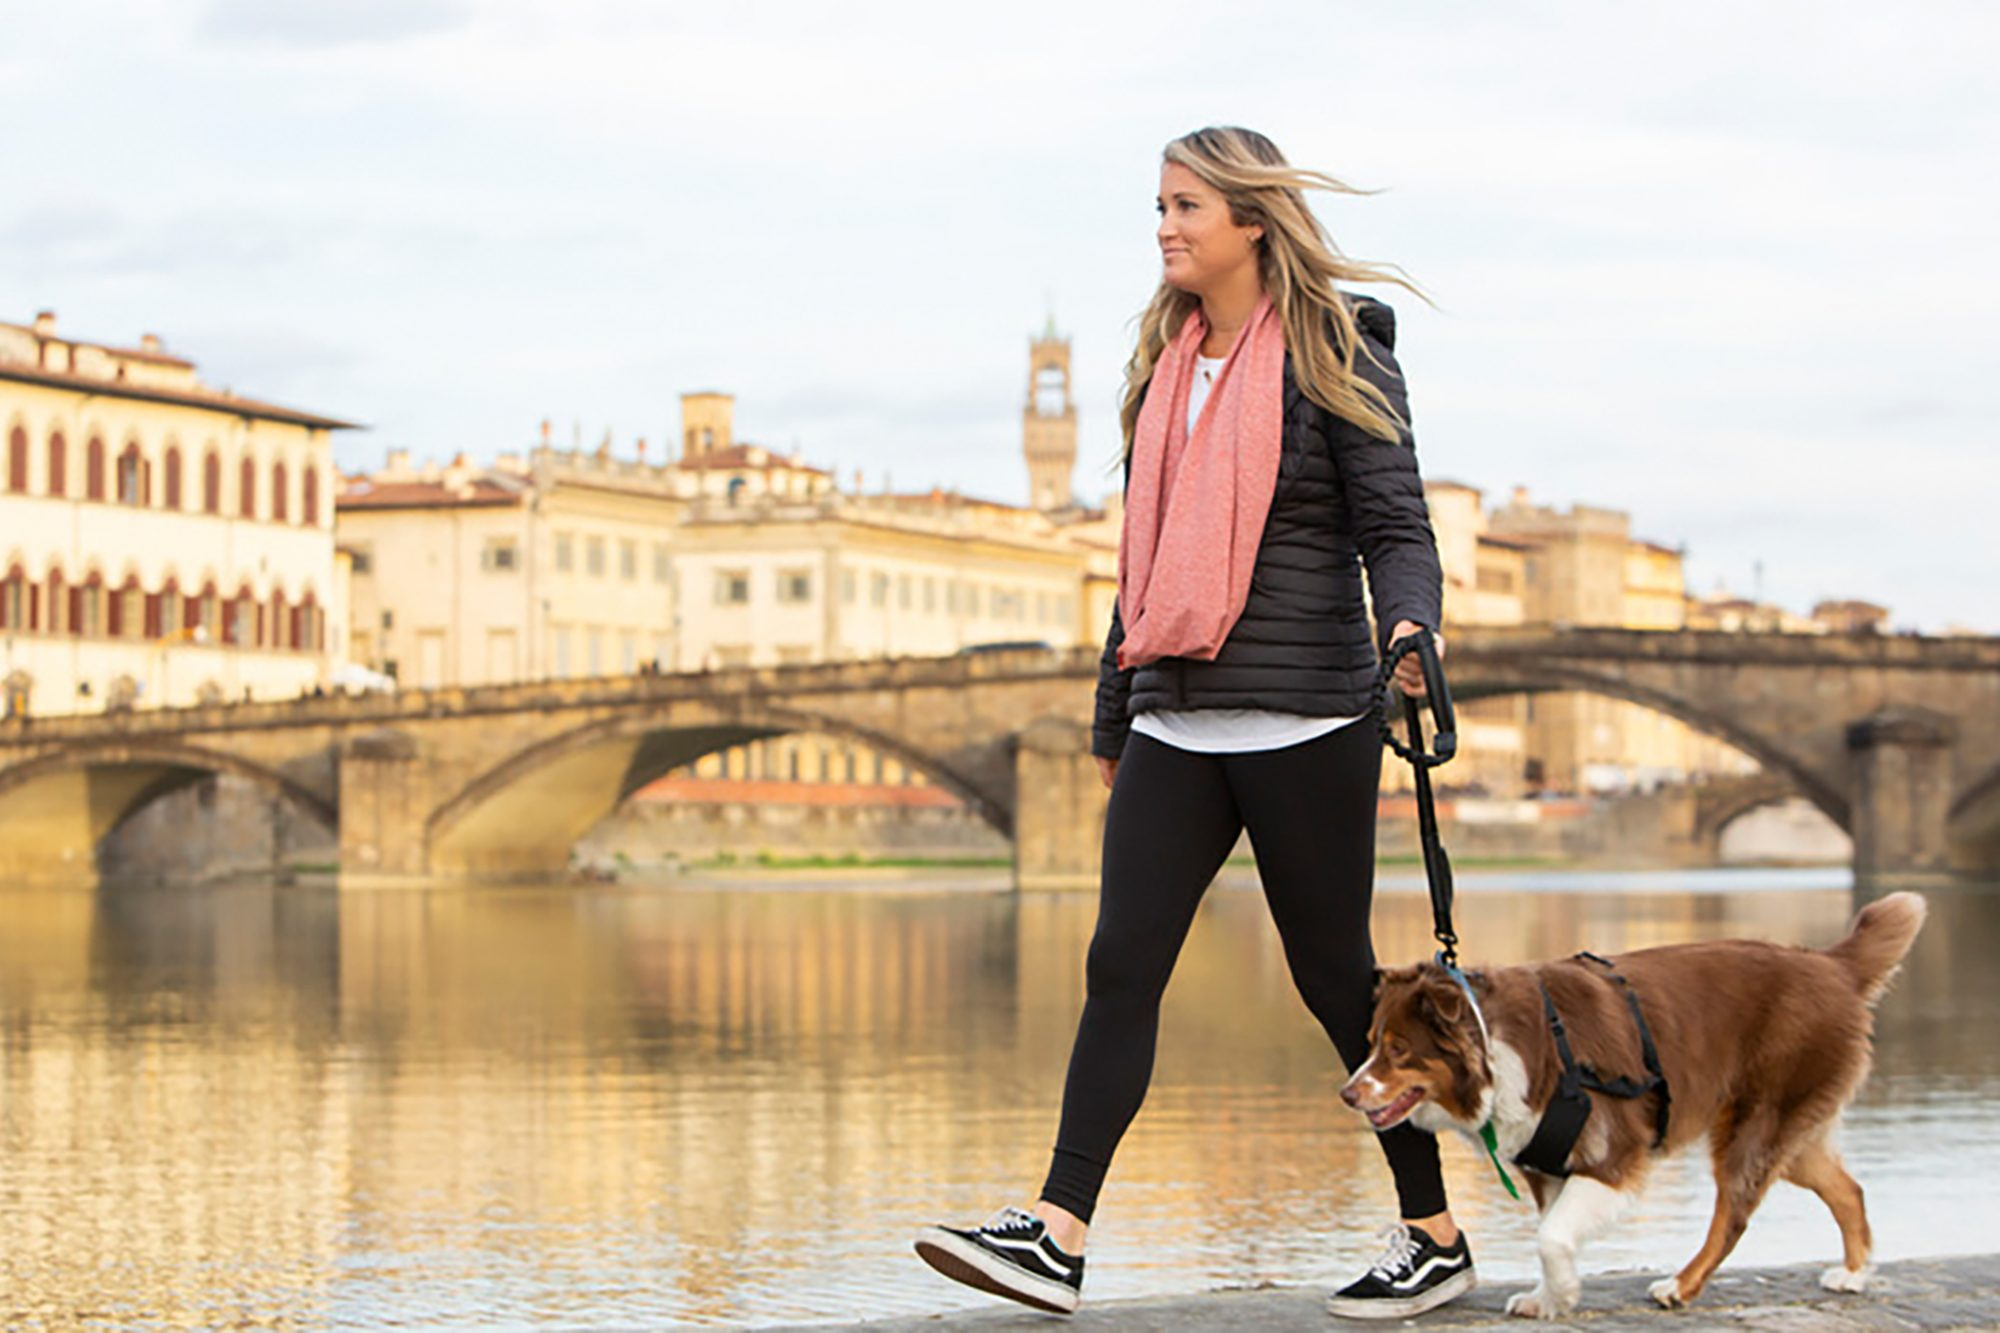 Lucy Riles & Duchess (Teammates & Pack Partners) walking in Florence